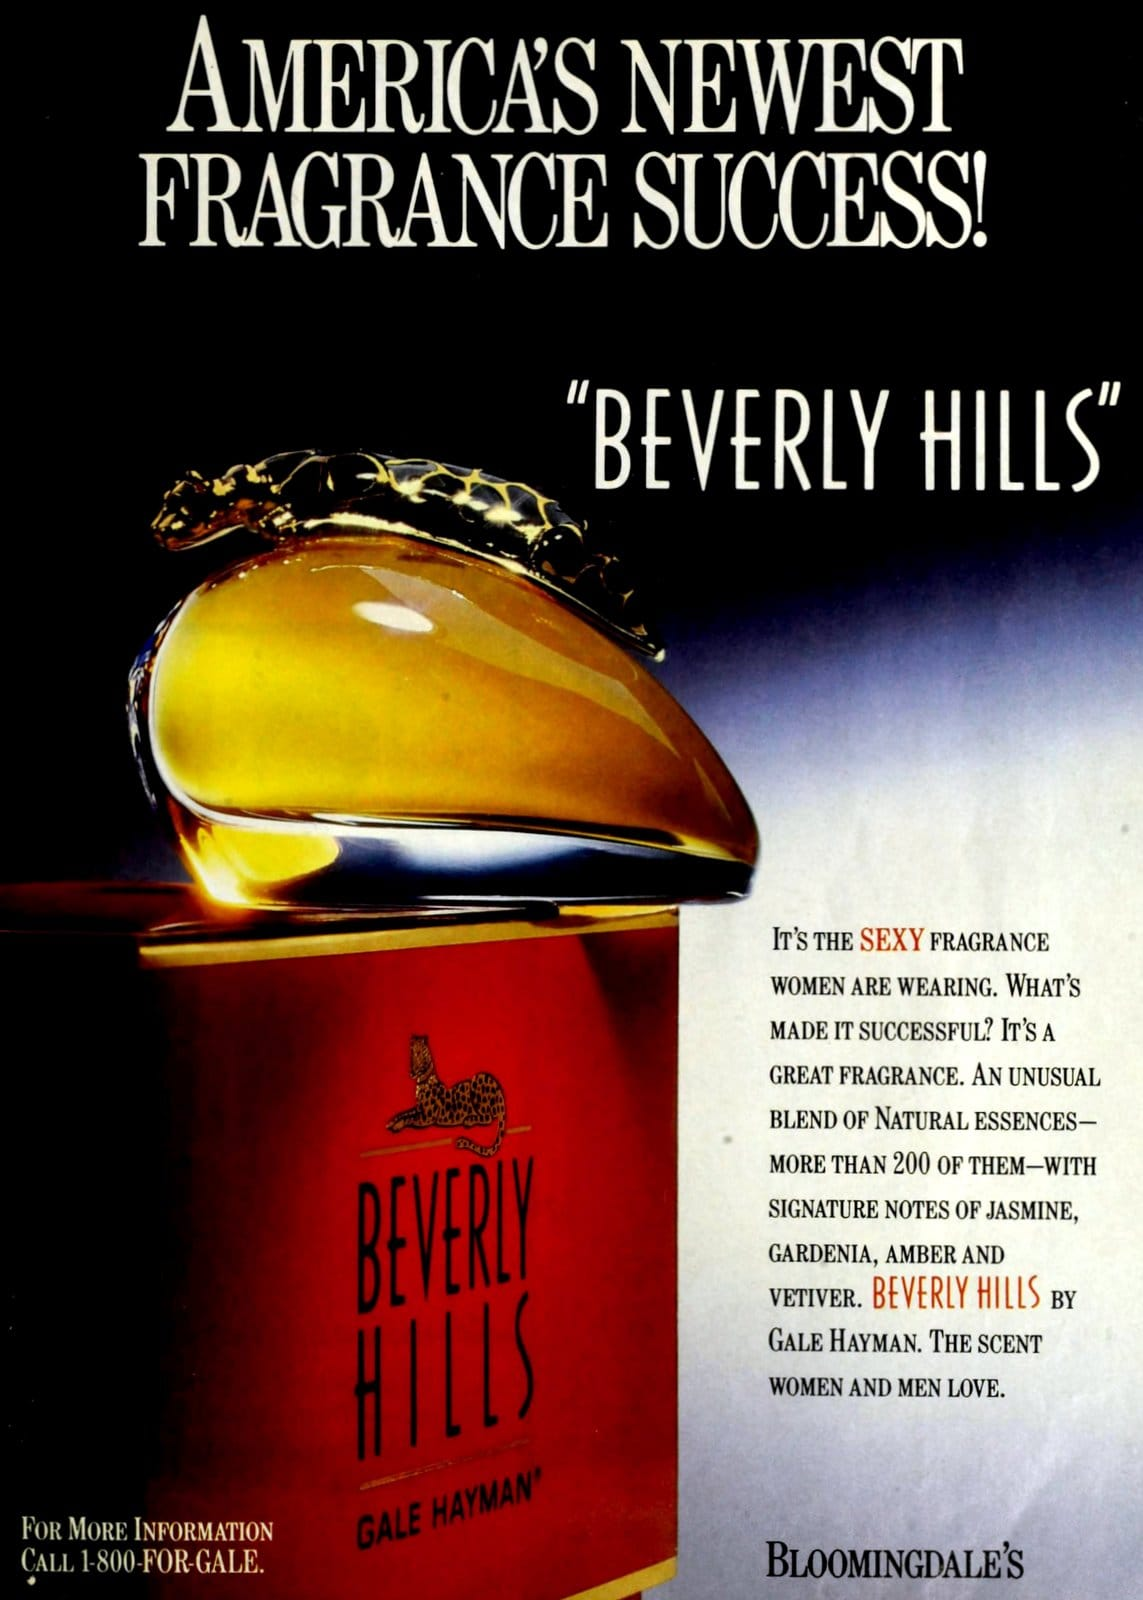 Beverly Hills fragrance from Gale Hayman (1991) at ClickAmericana.com